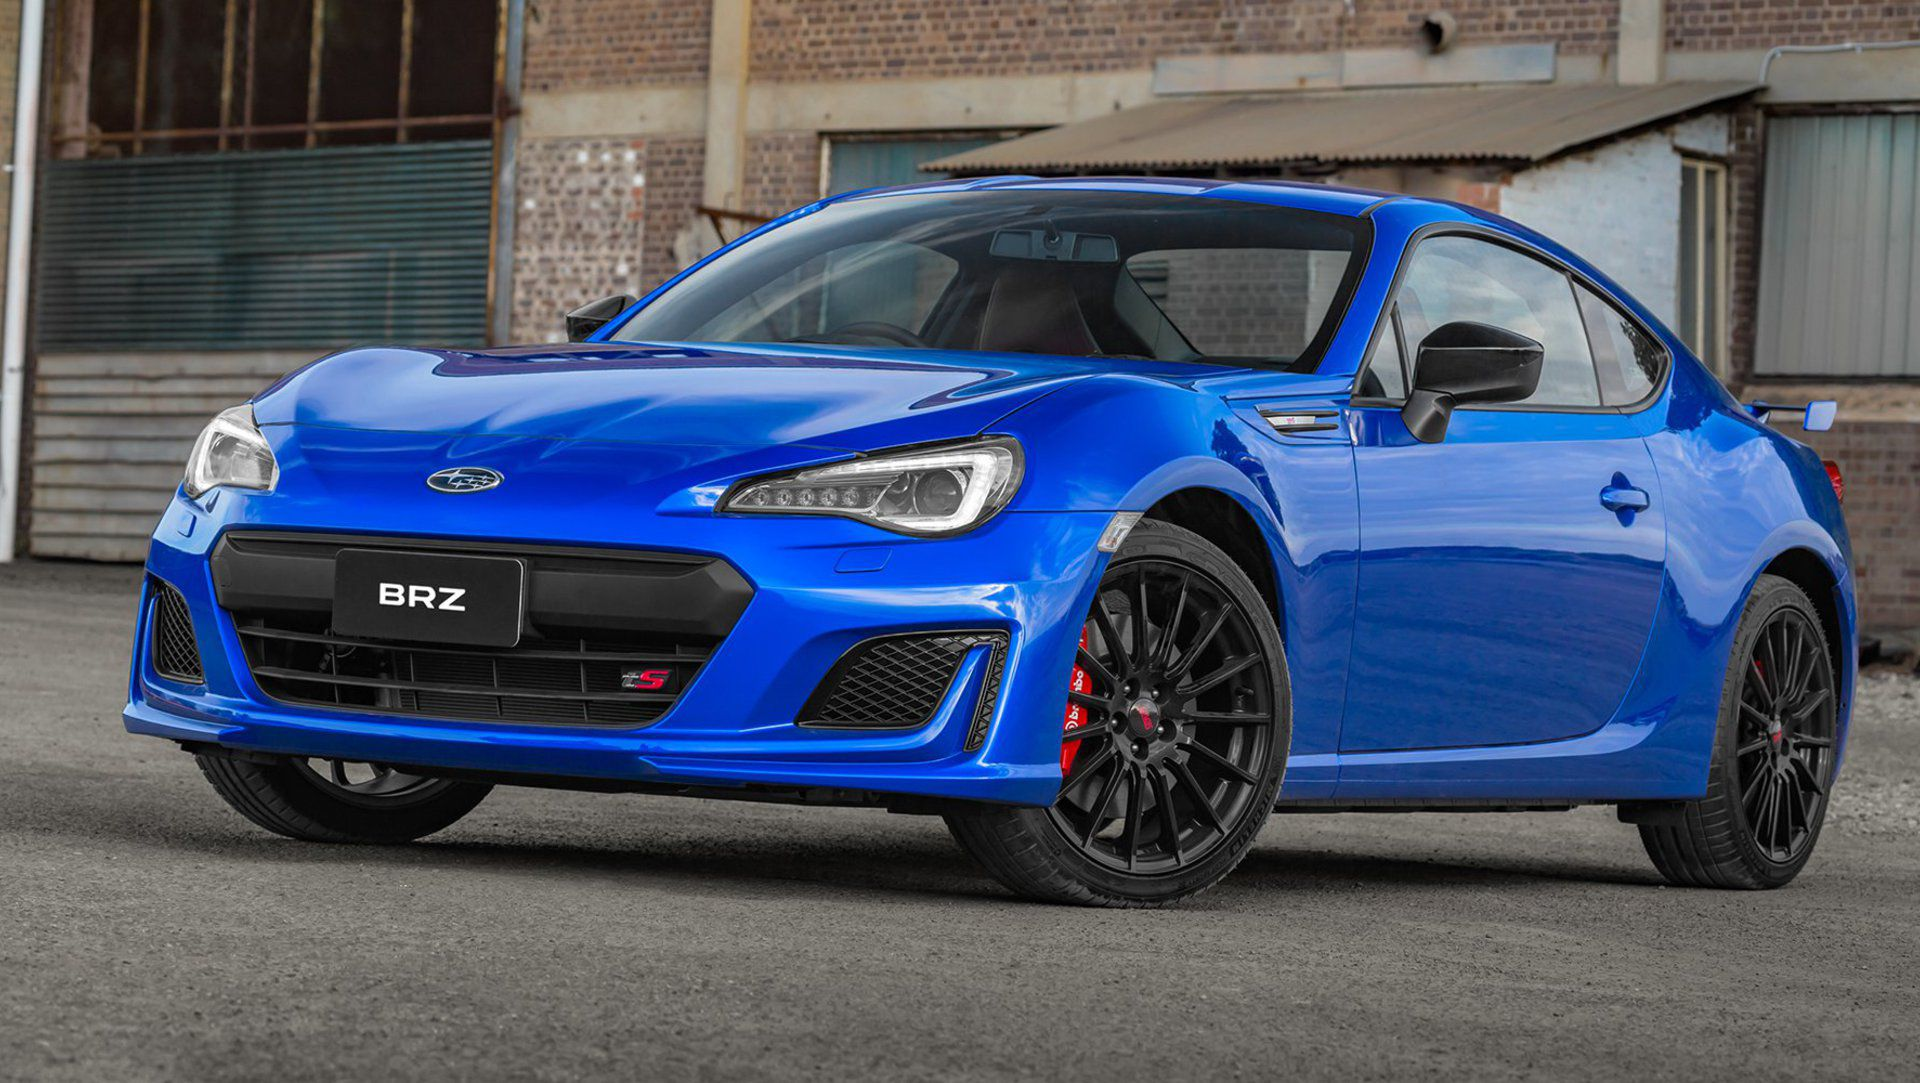 2018 Subaru BRZ pricing and specsMore focused tS variant debuts new